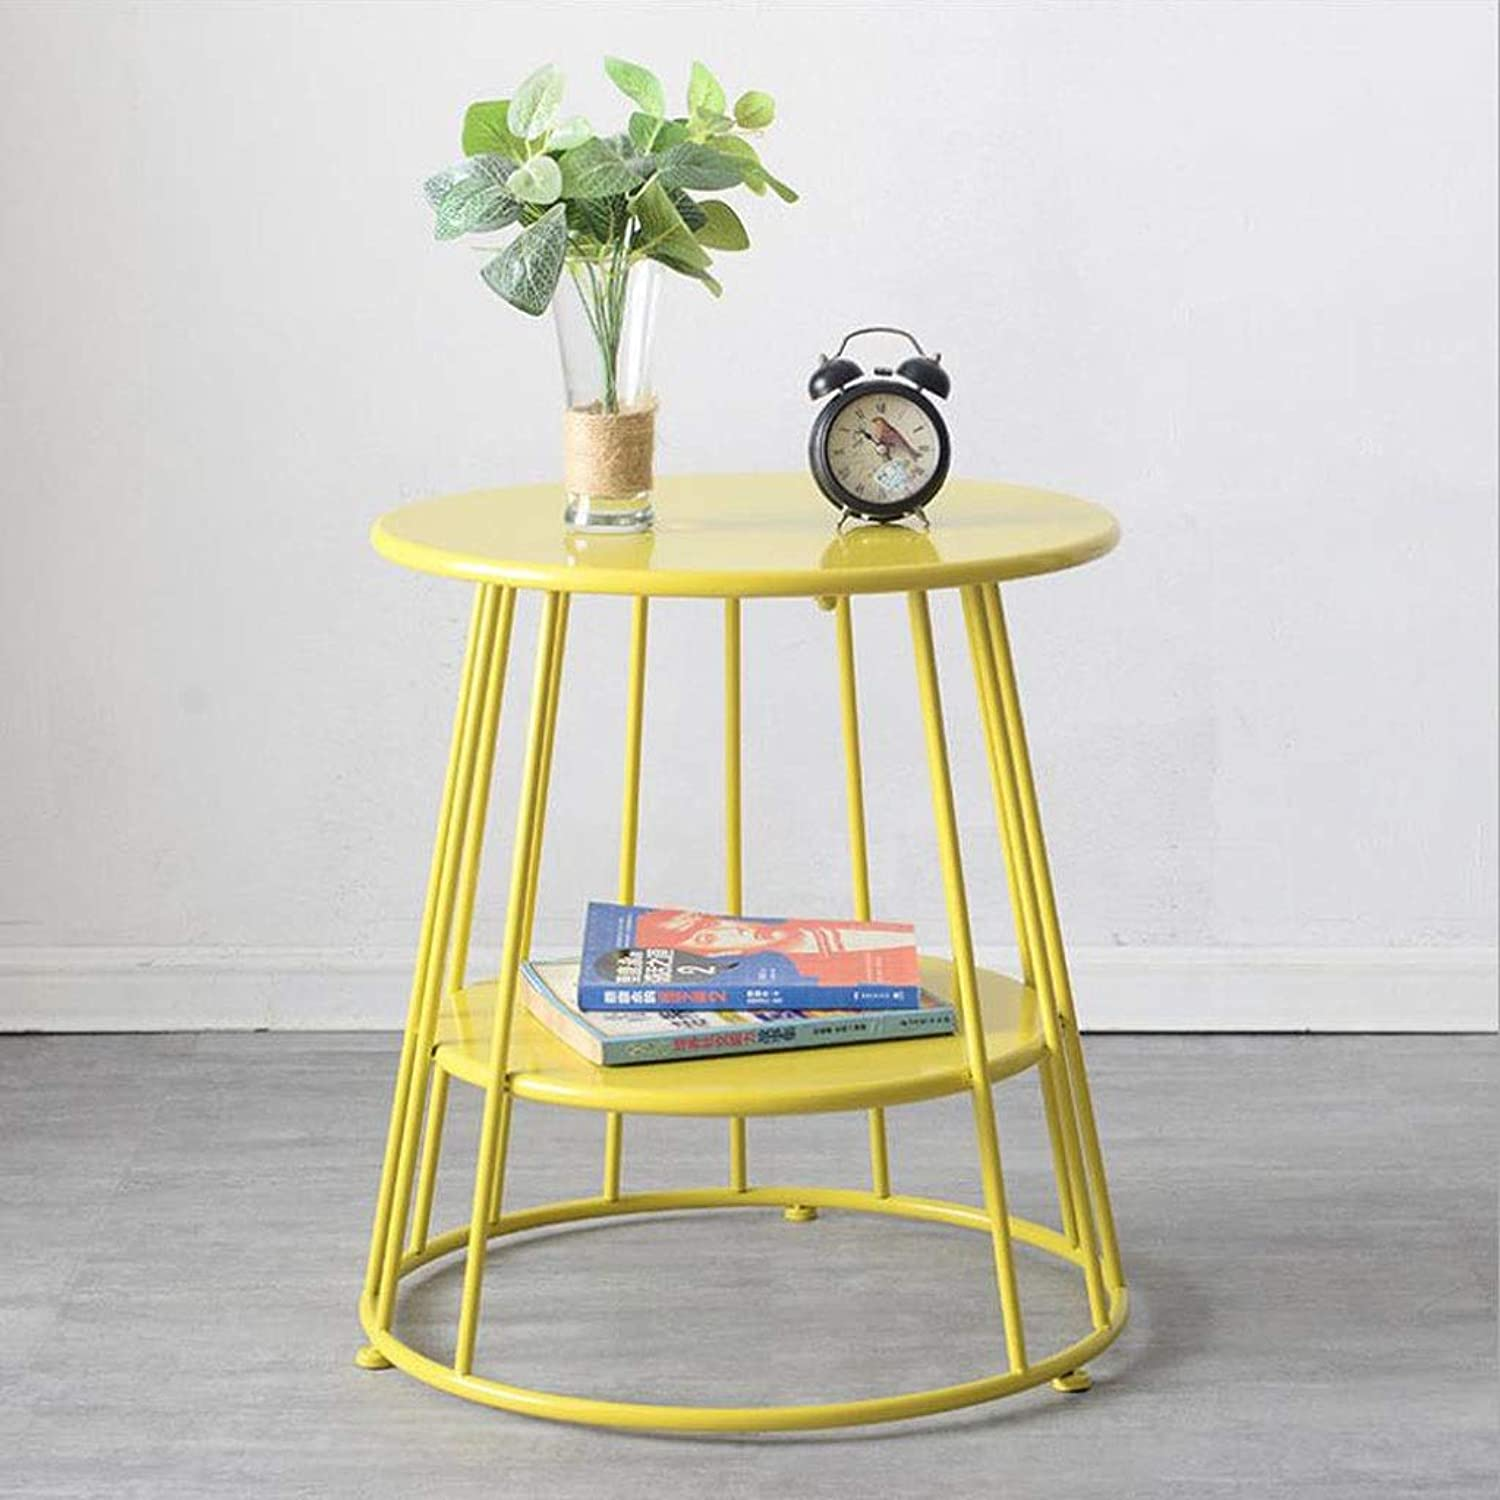 End Table, Iron Balcony Small Coffee Table Sofa Side Living Room Small Round Double Layer Multi-Function (color   Yellow, Size   55CM)